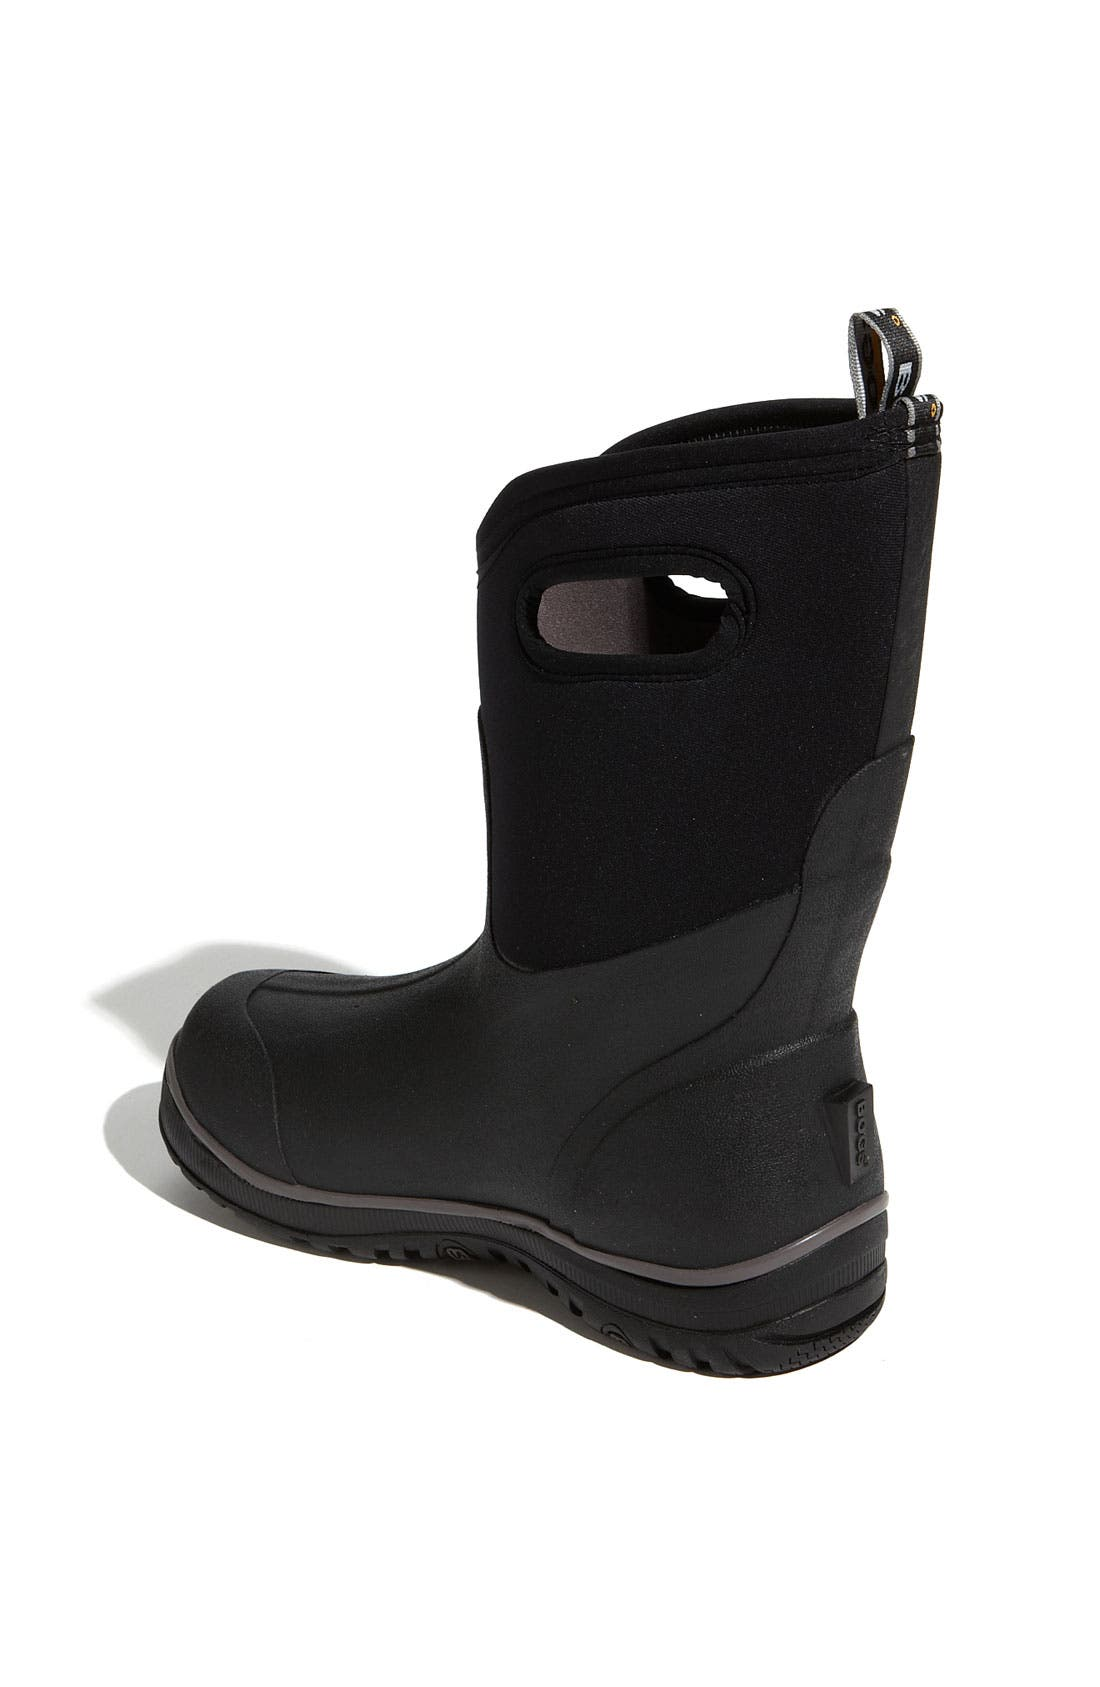 Alternate Image 2  - Bogs 'Classic Ultra' Mid High Rain Boot   (Men)